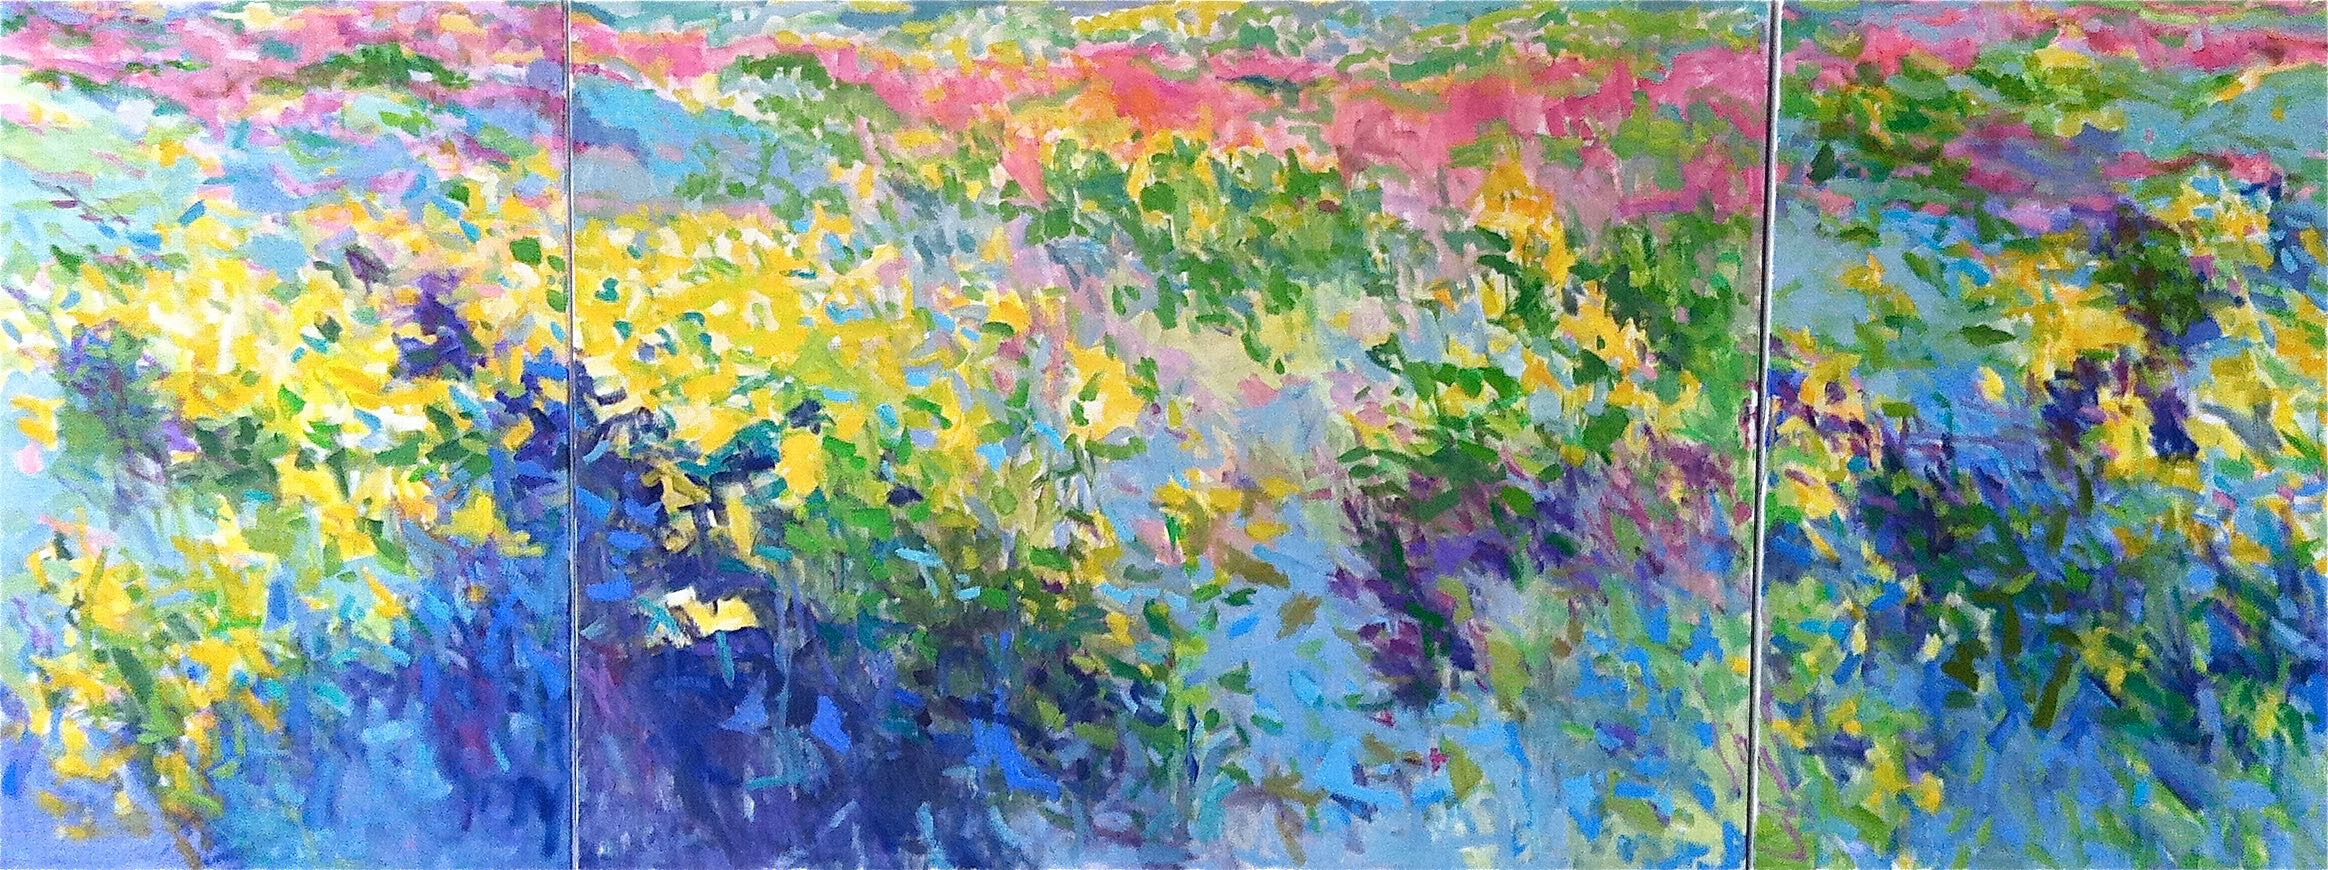 John's Meadow, triptych SOLD Commissioned for Shady Grove Cancer Center, Maryland